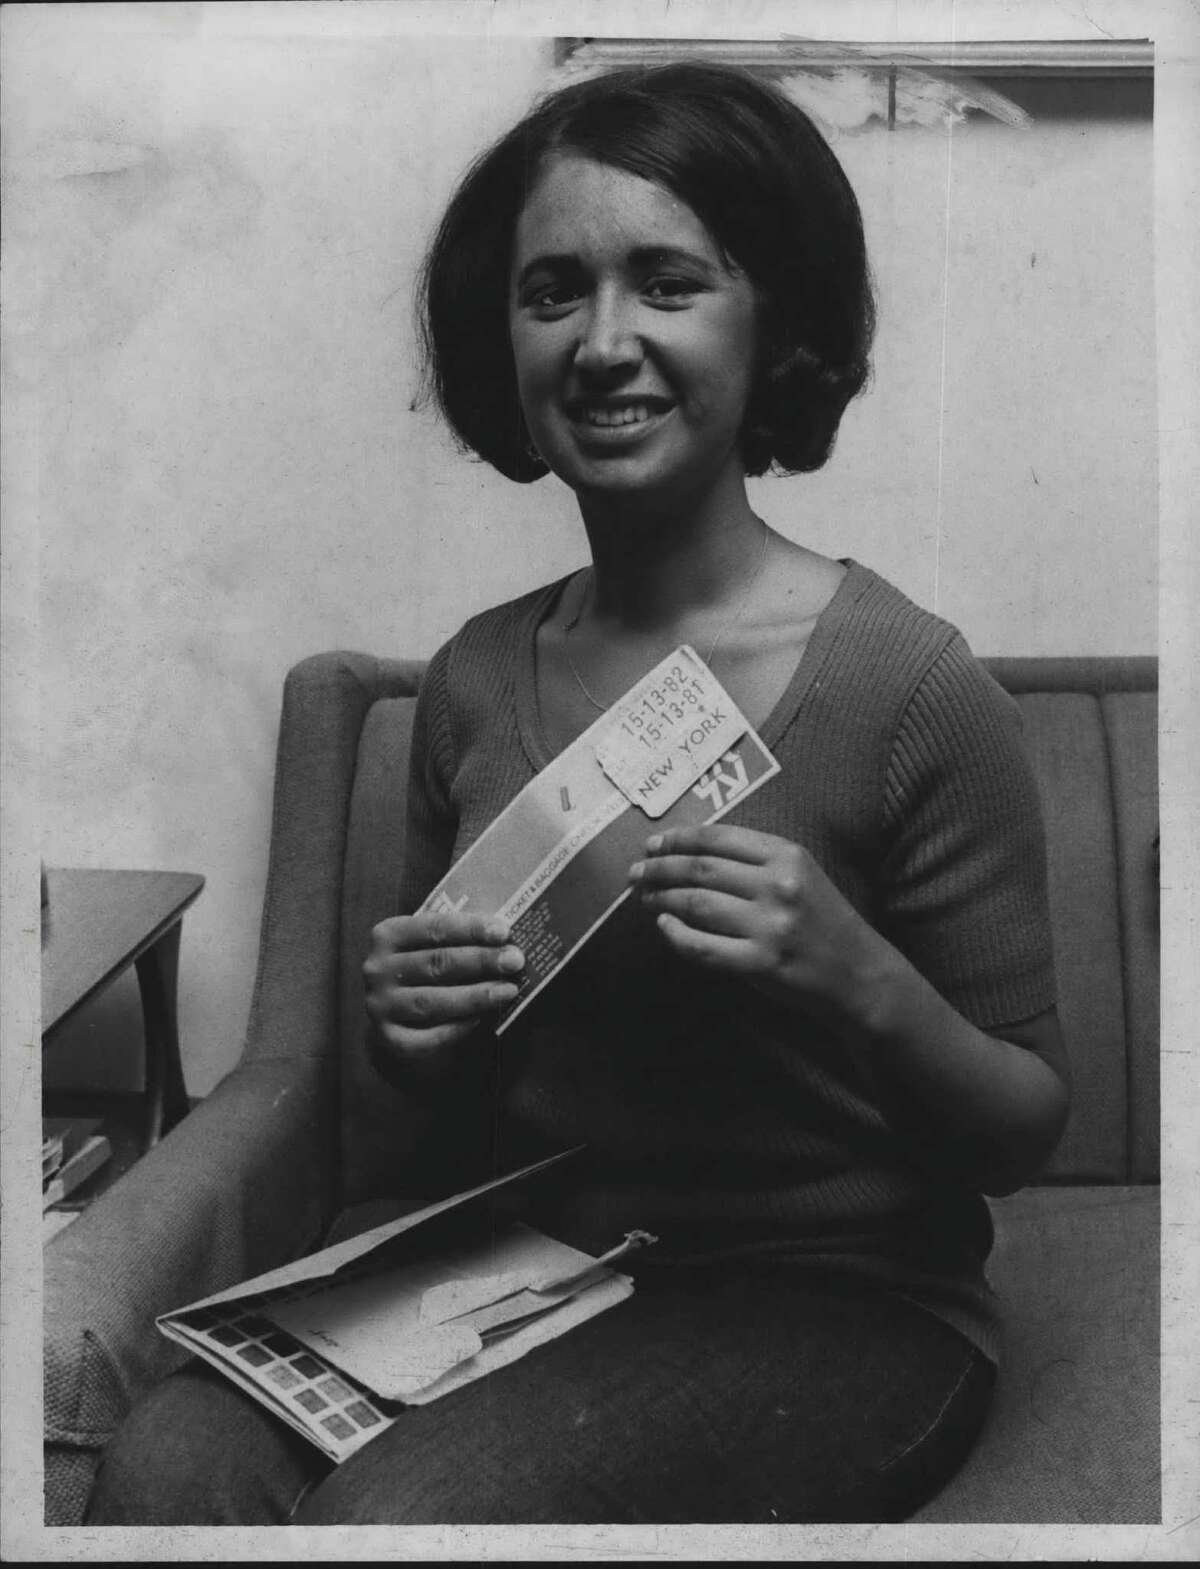 Isabel Berkowitz shows off airline ticket in New York. September 1970 (Joe Higgins/Times Union Archive)